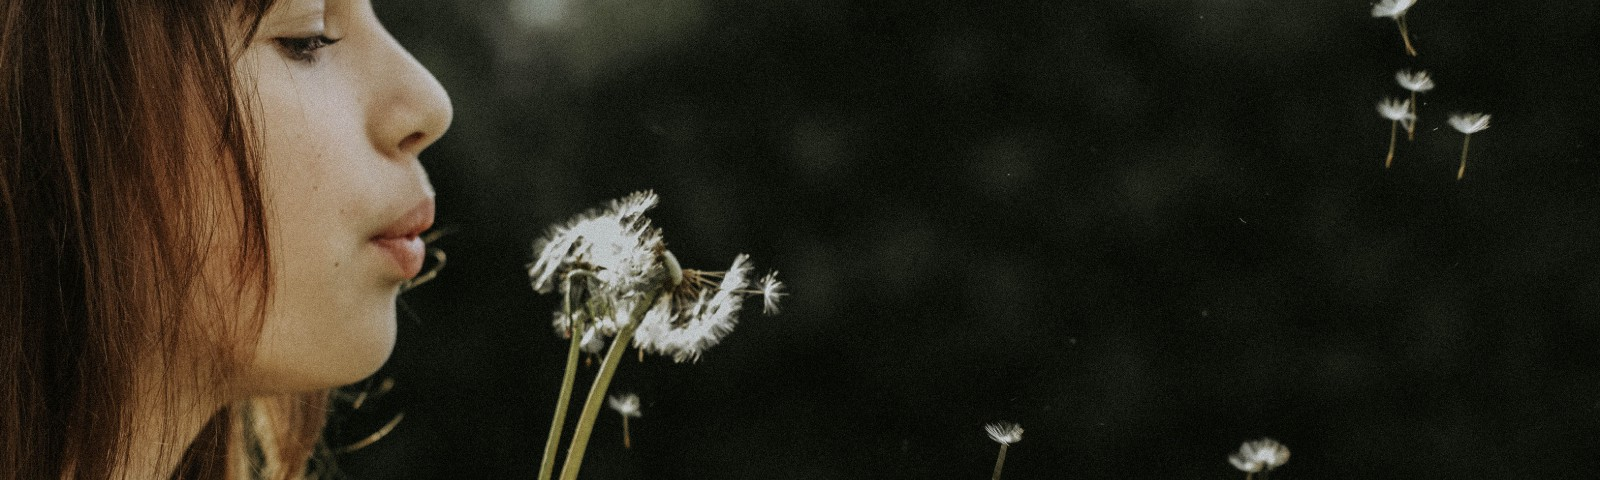 Woman blowing the white seeds off a dandelion